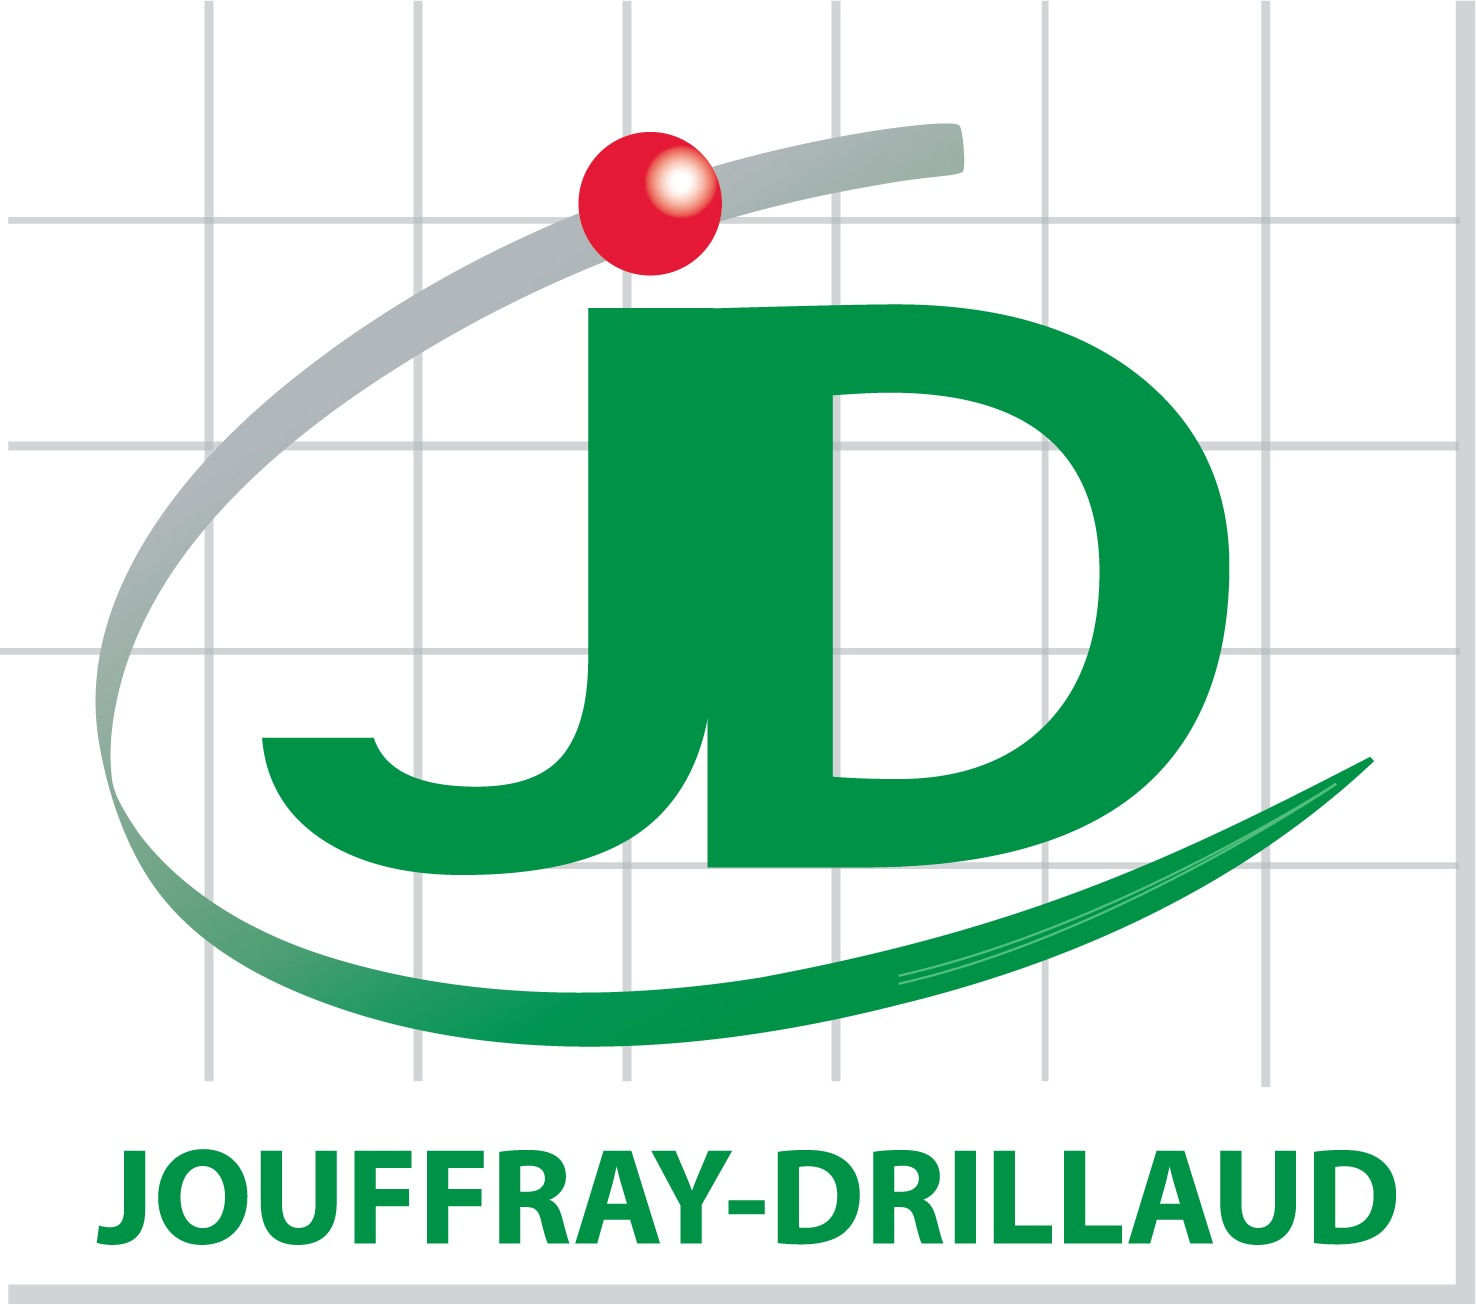 JOUFFRAY DRILLAUD